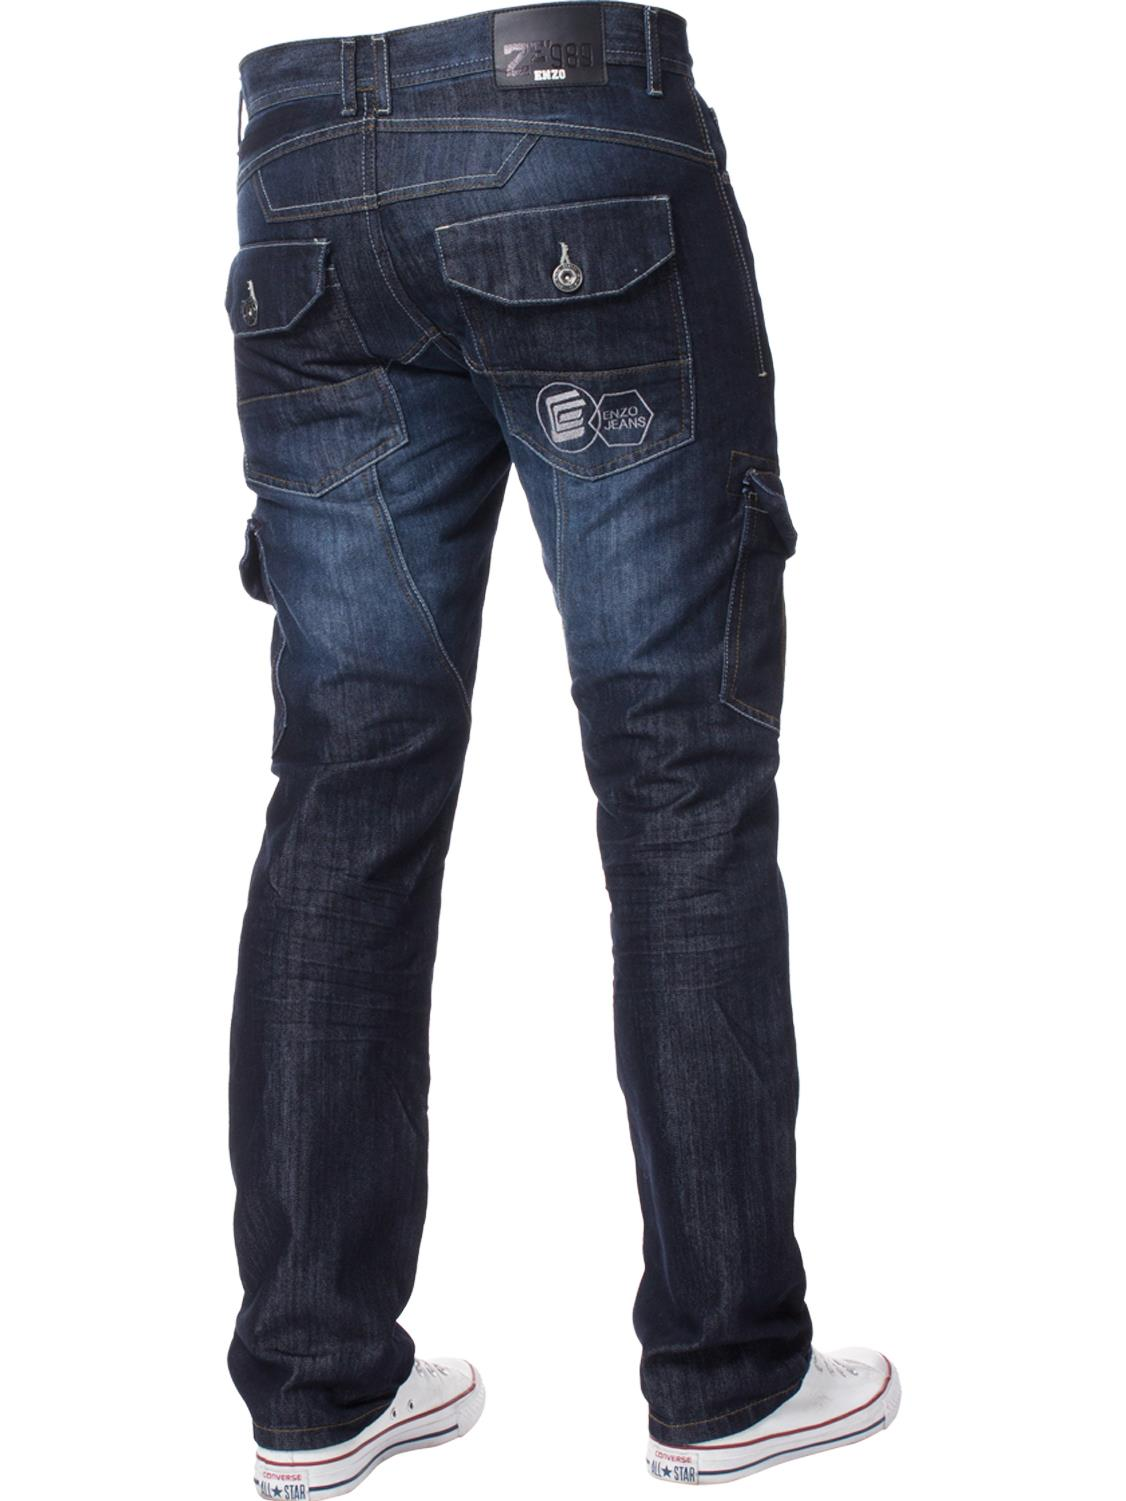 Enzo-Mens-Jeans-Big-Tall-Leg-King-Size-Denim-Pants-Chino-Trousers-Waist-44-034-60-034 miniature 78